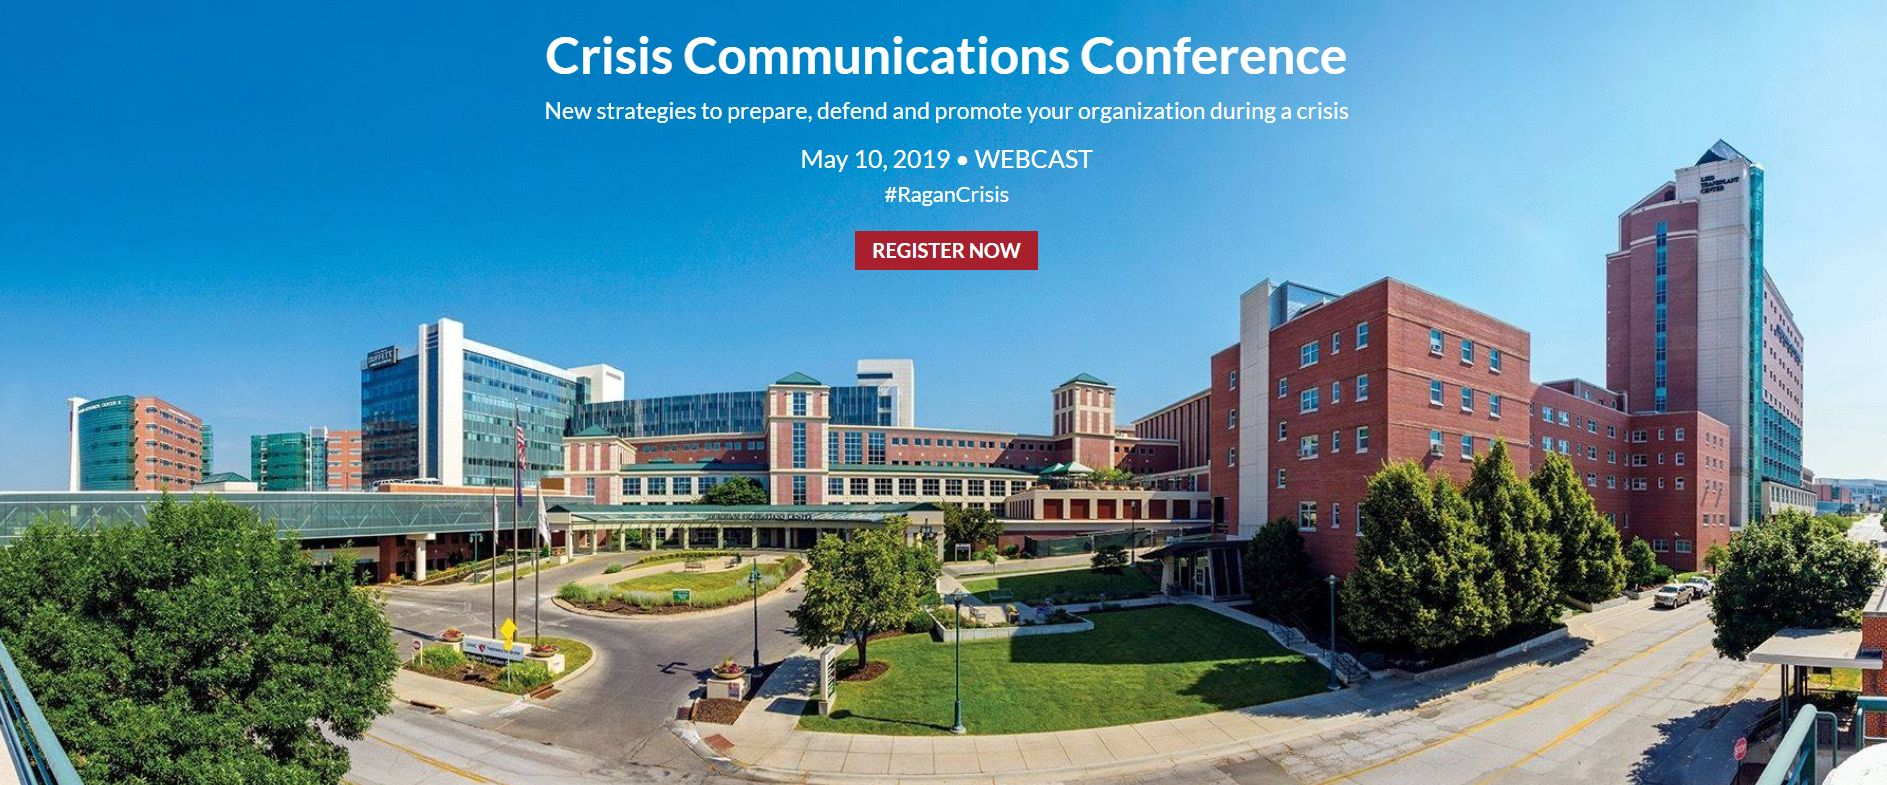 CrisisCommConference